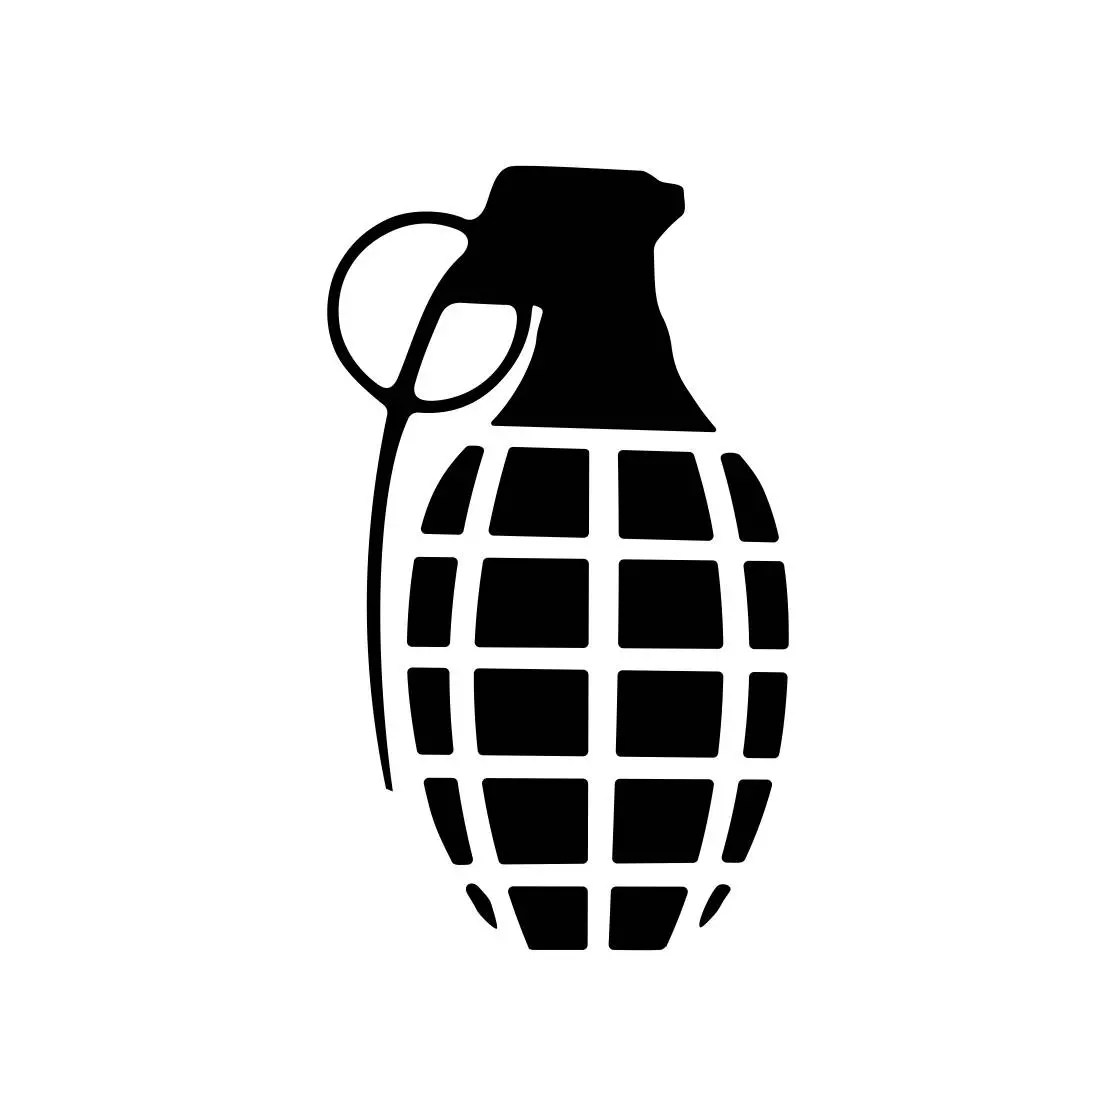 Grenade Military Graphics Svg Dxf Eps Cdr Ai Vector